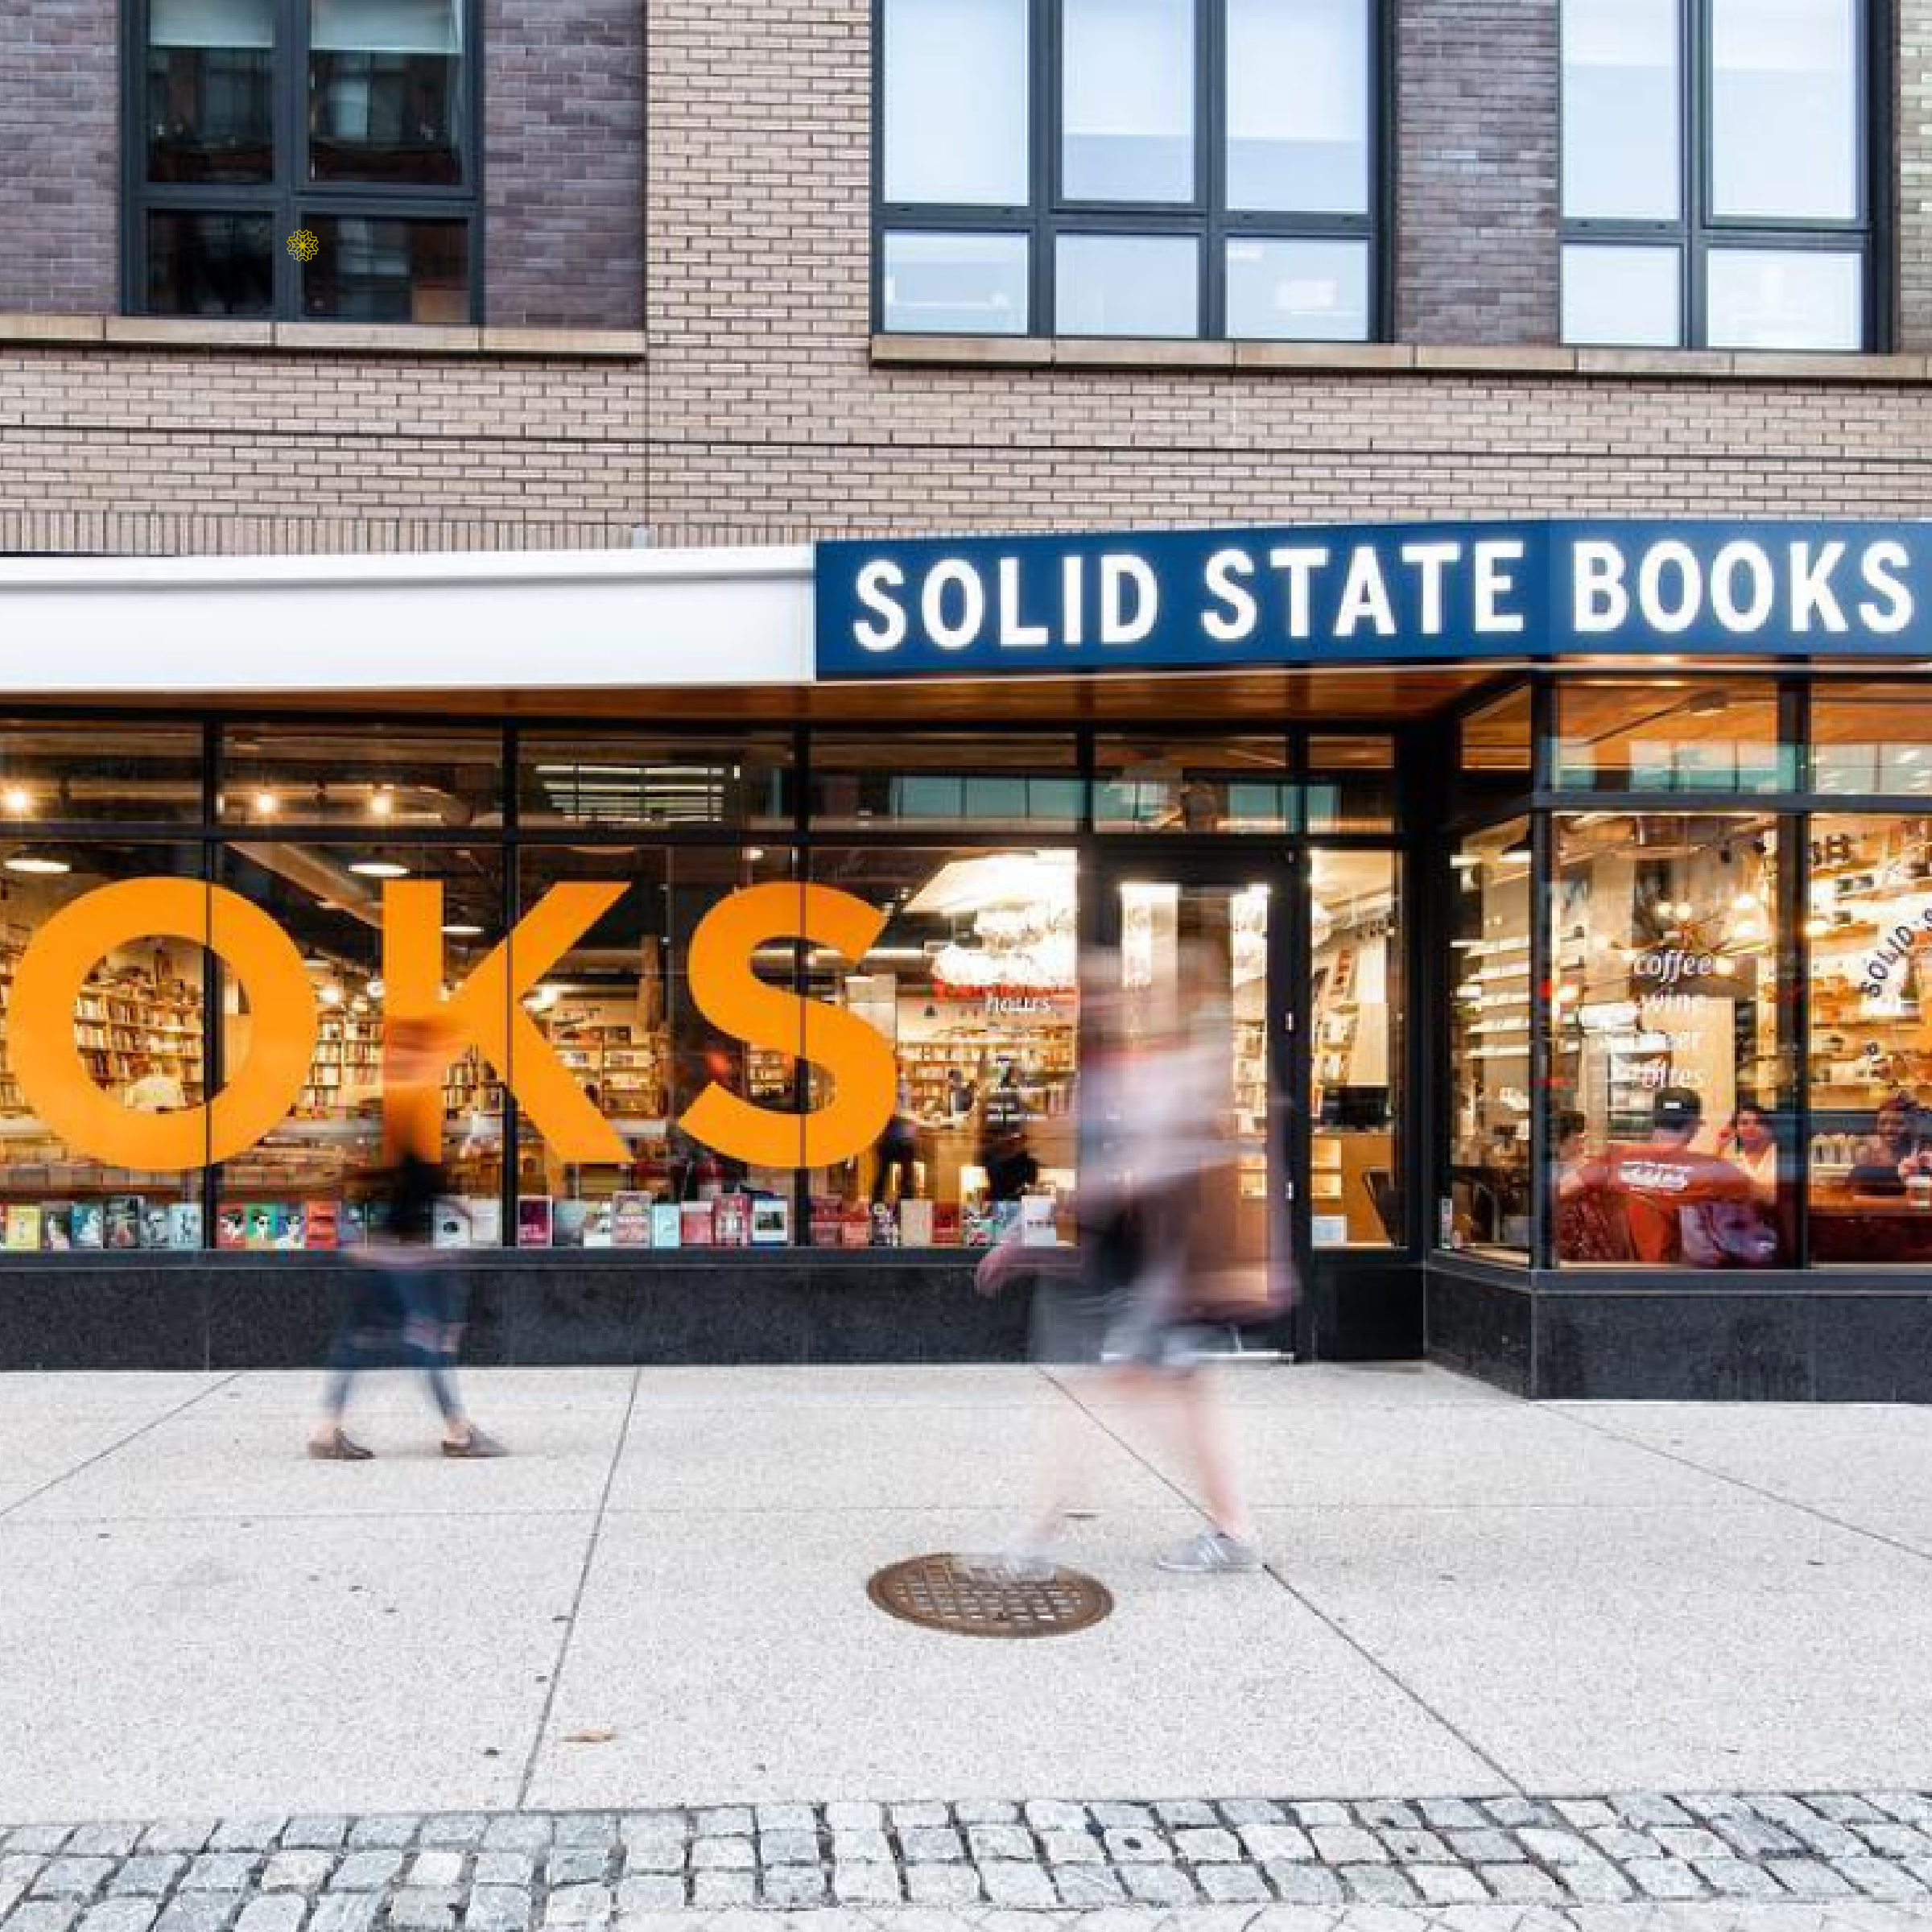 Spotlight on Solid State Books